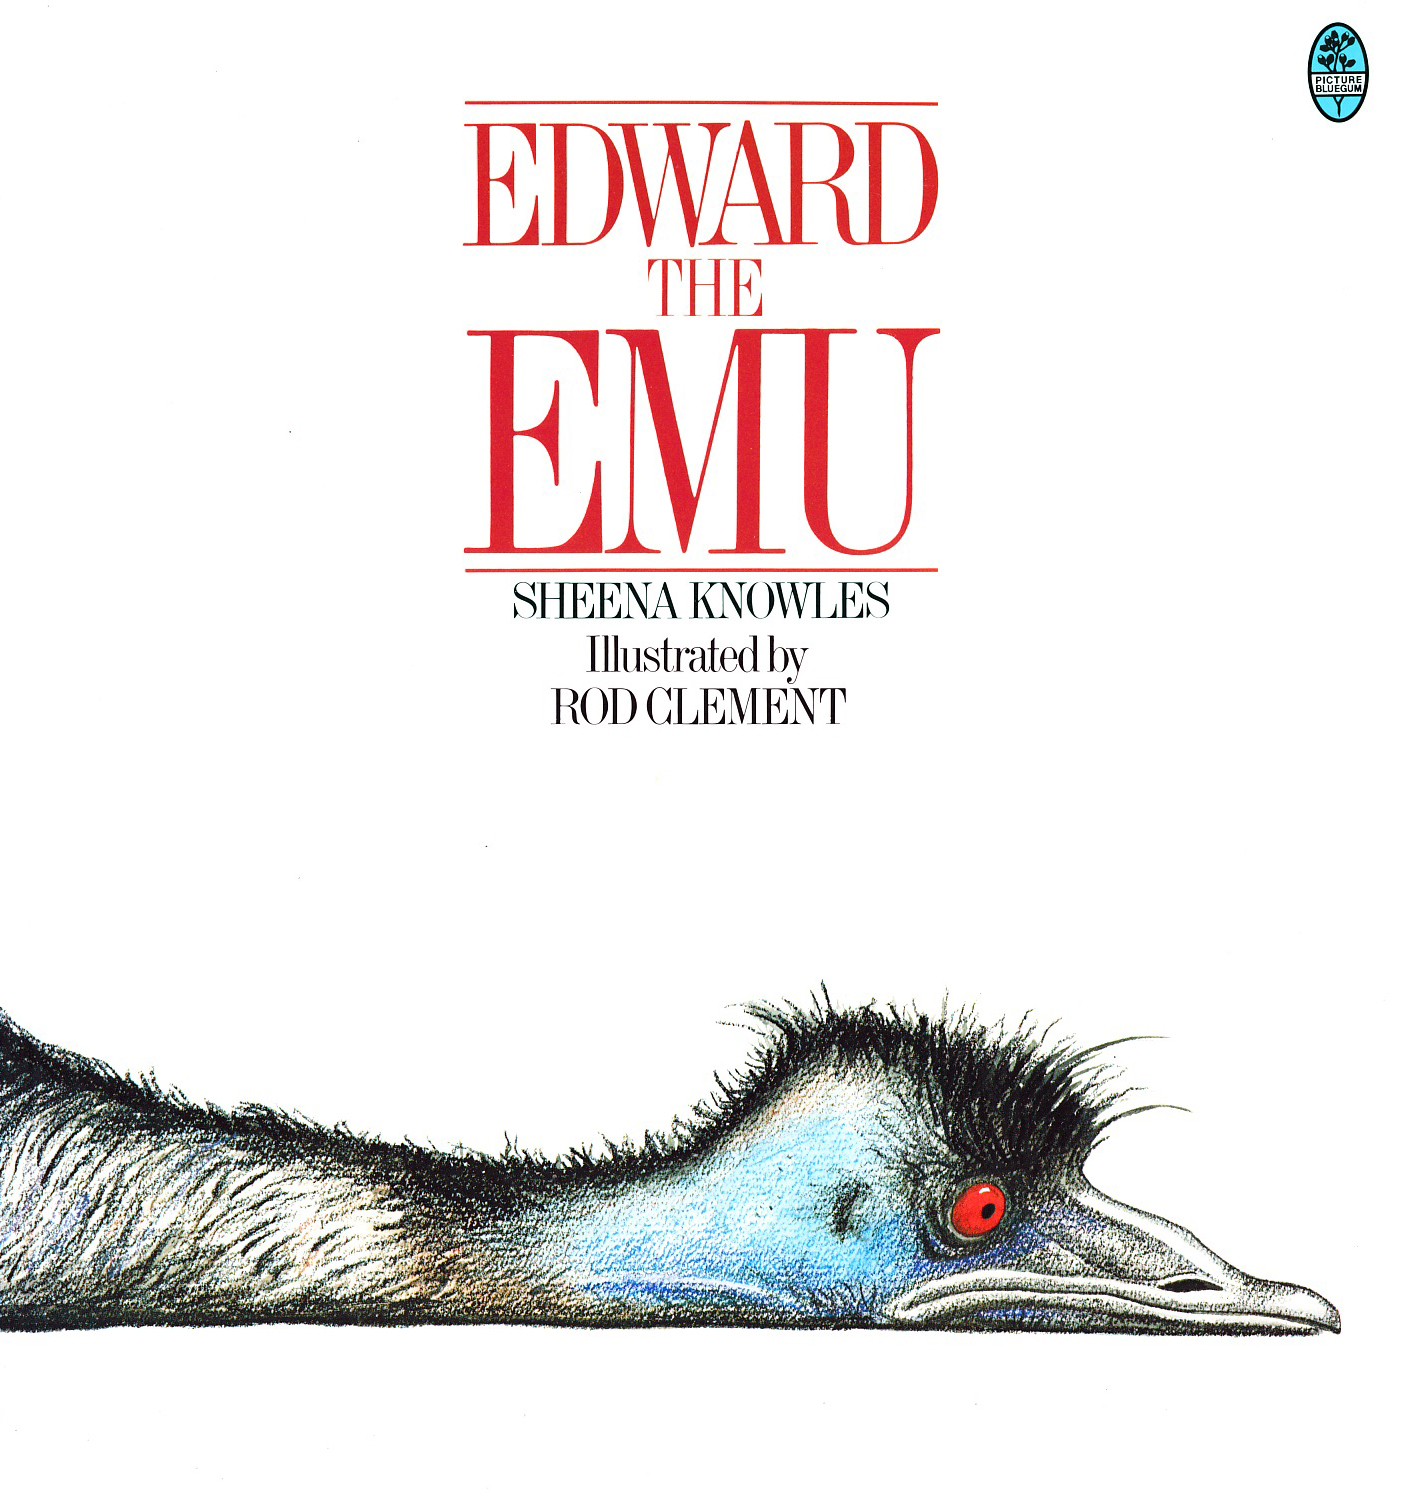 rod_clement_edward_the_emu_cover.jpg